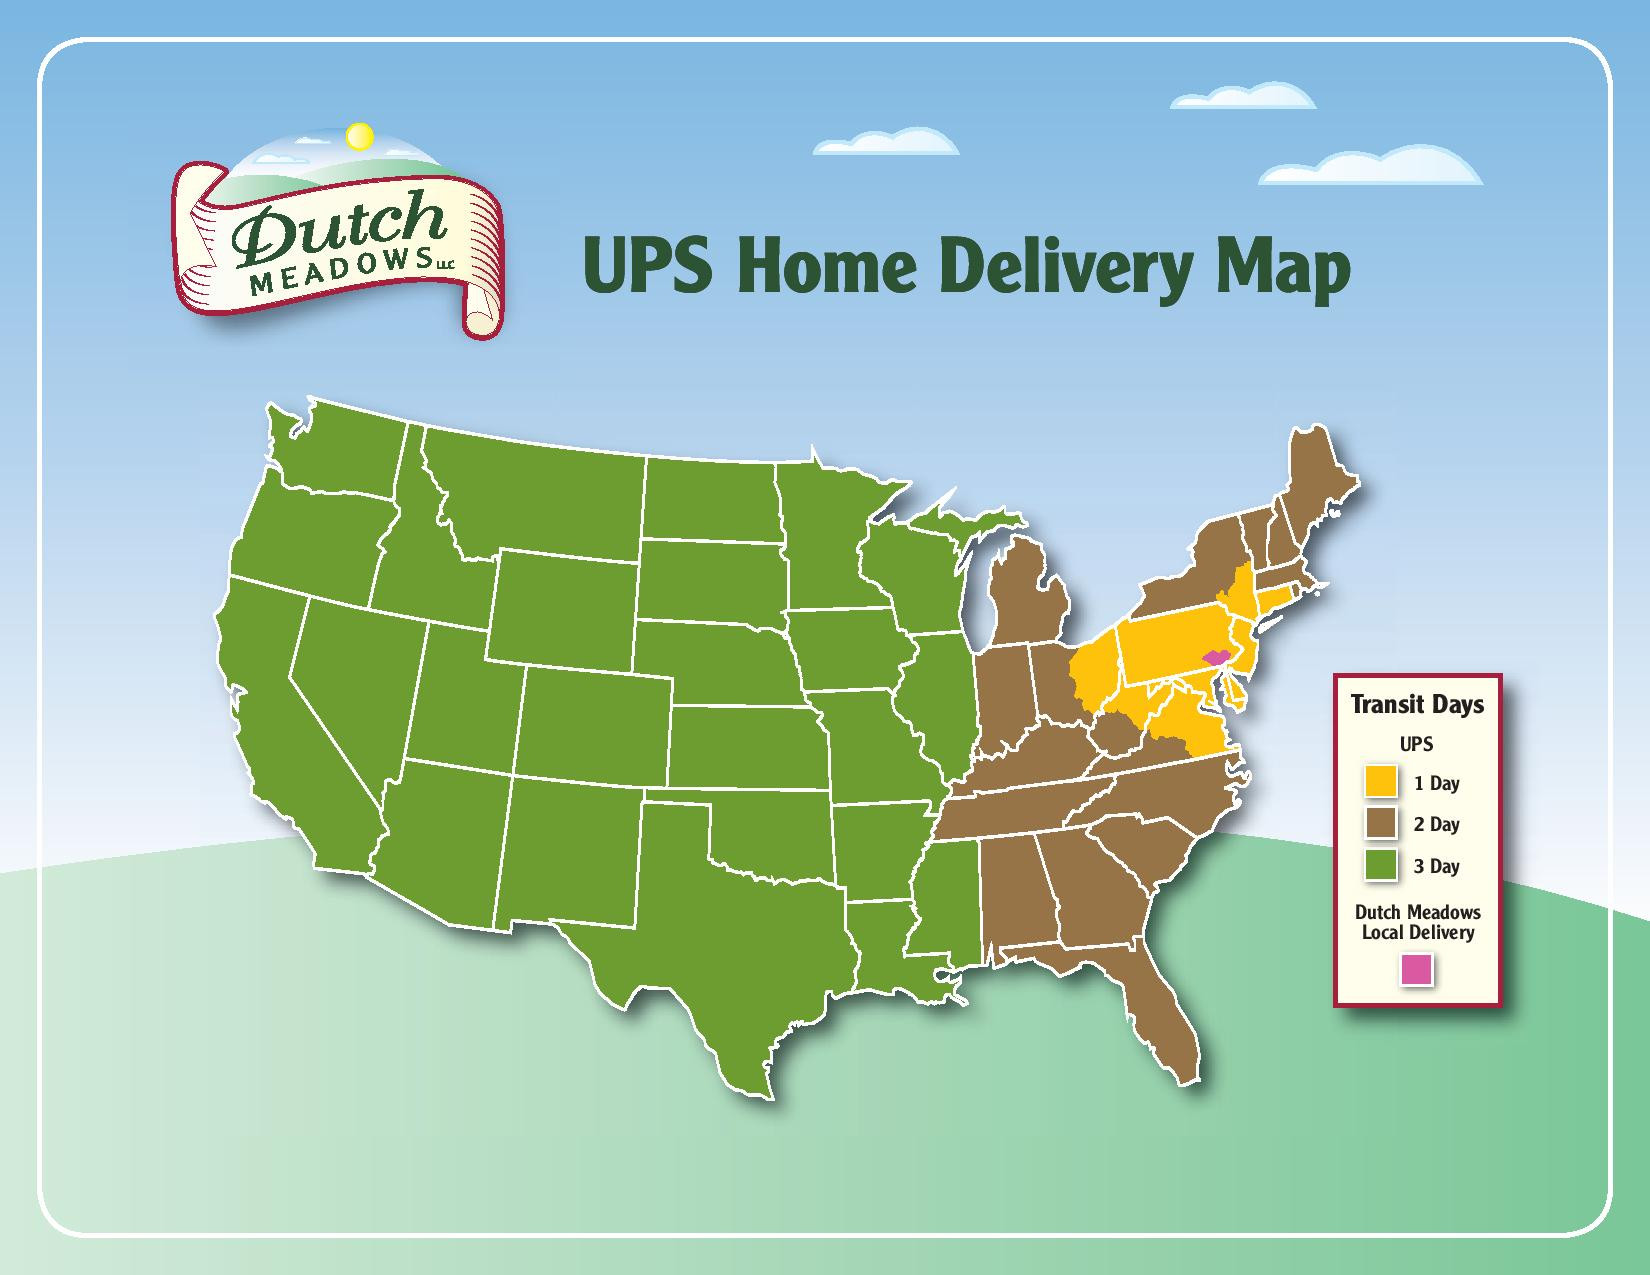 41926_Dutch-Meadows--Shipping-Map-Master--FINAL-page-001.jpg